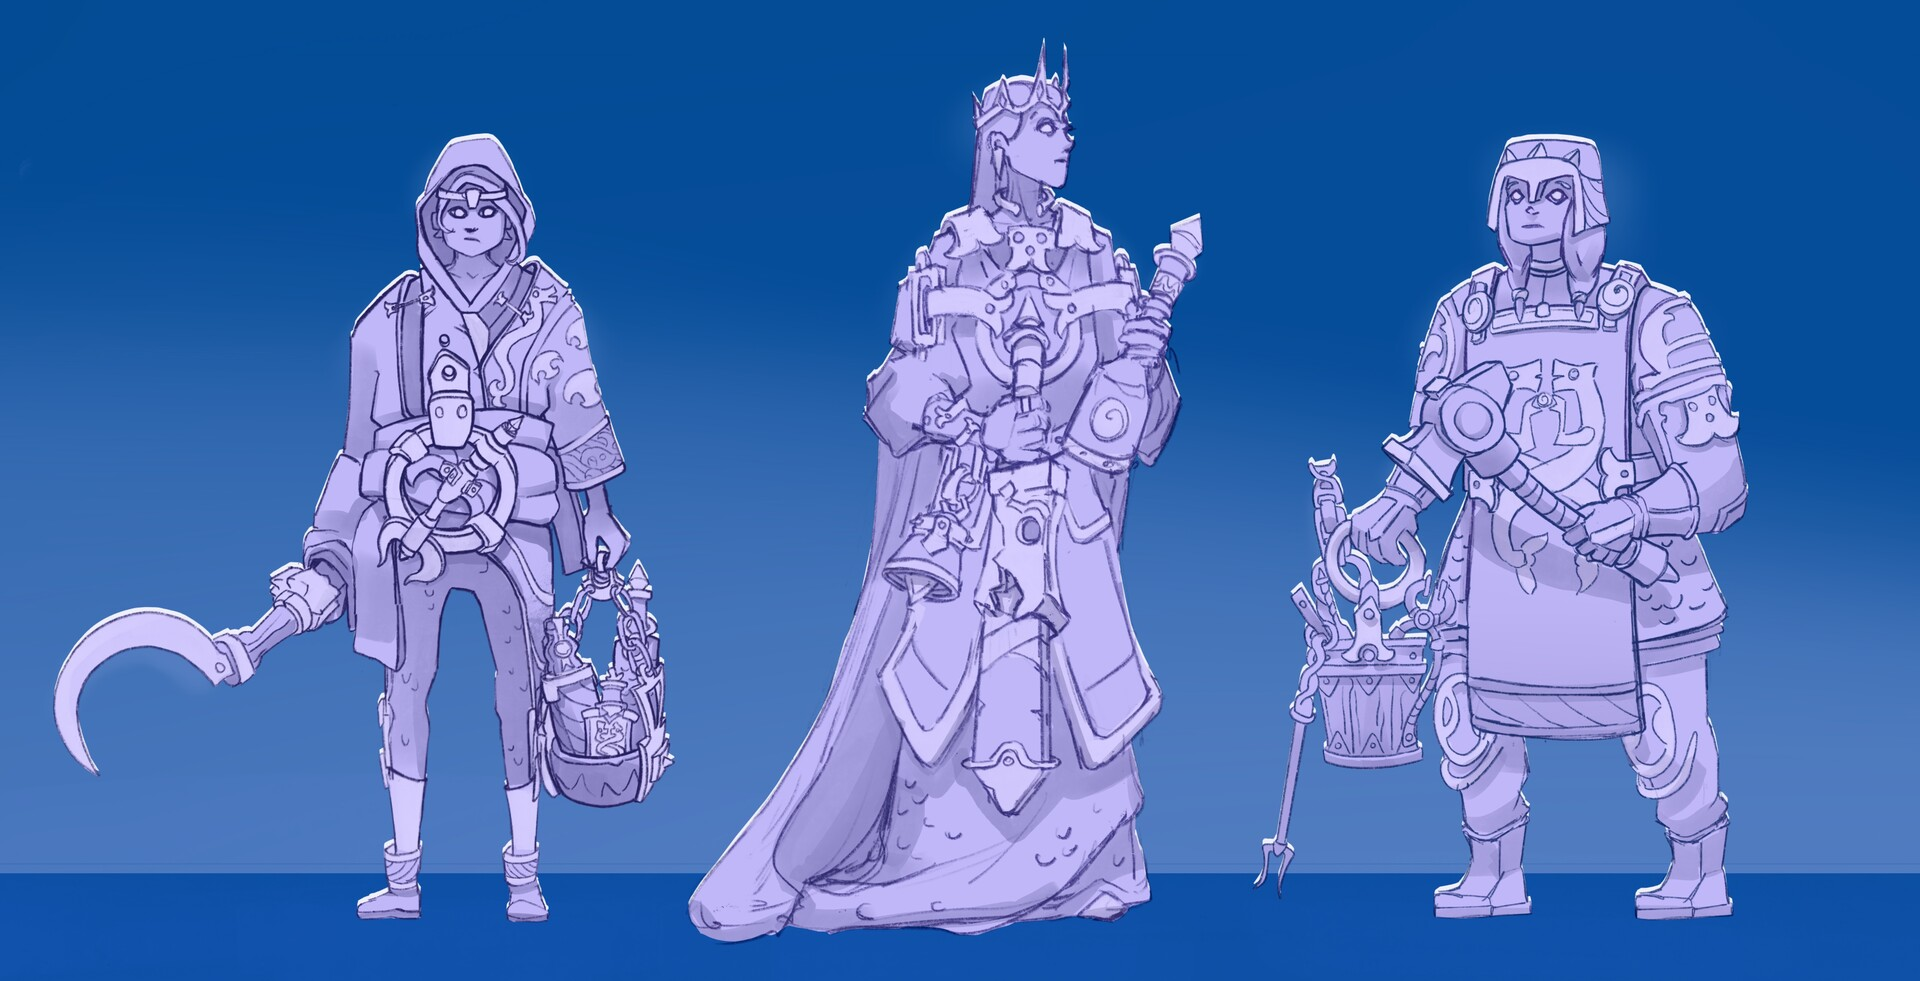 The Potion seller, the Queen and the Smith.